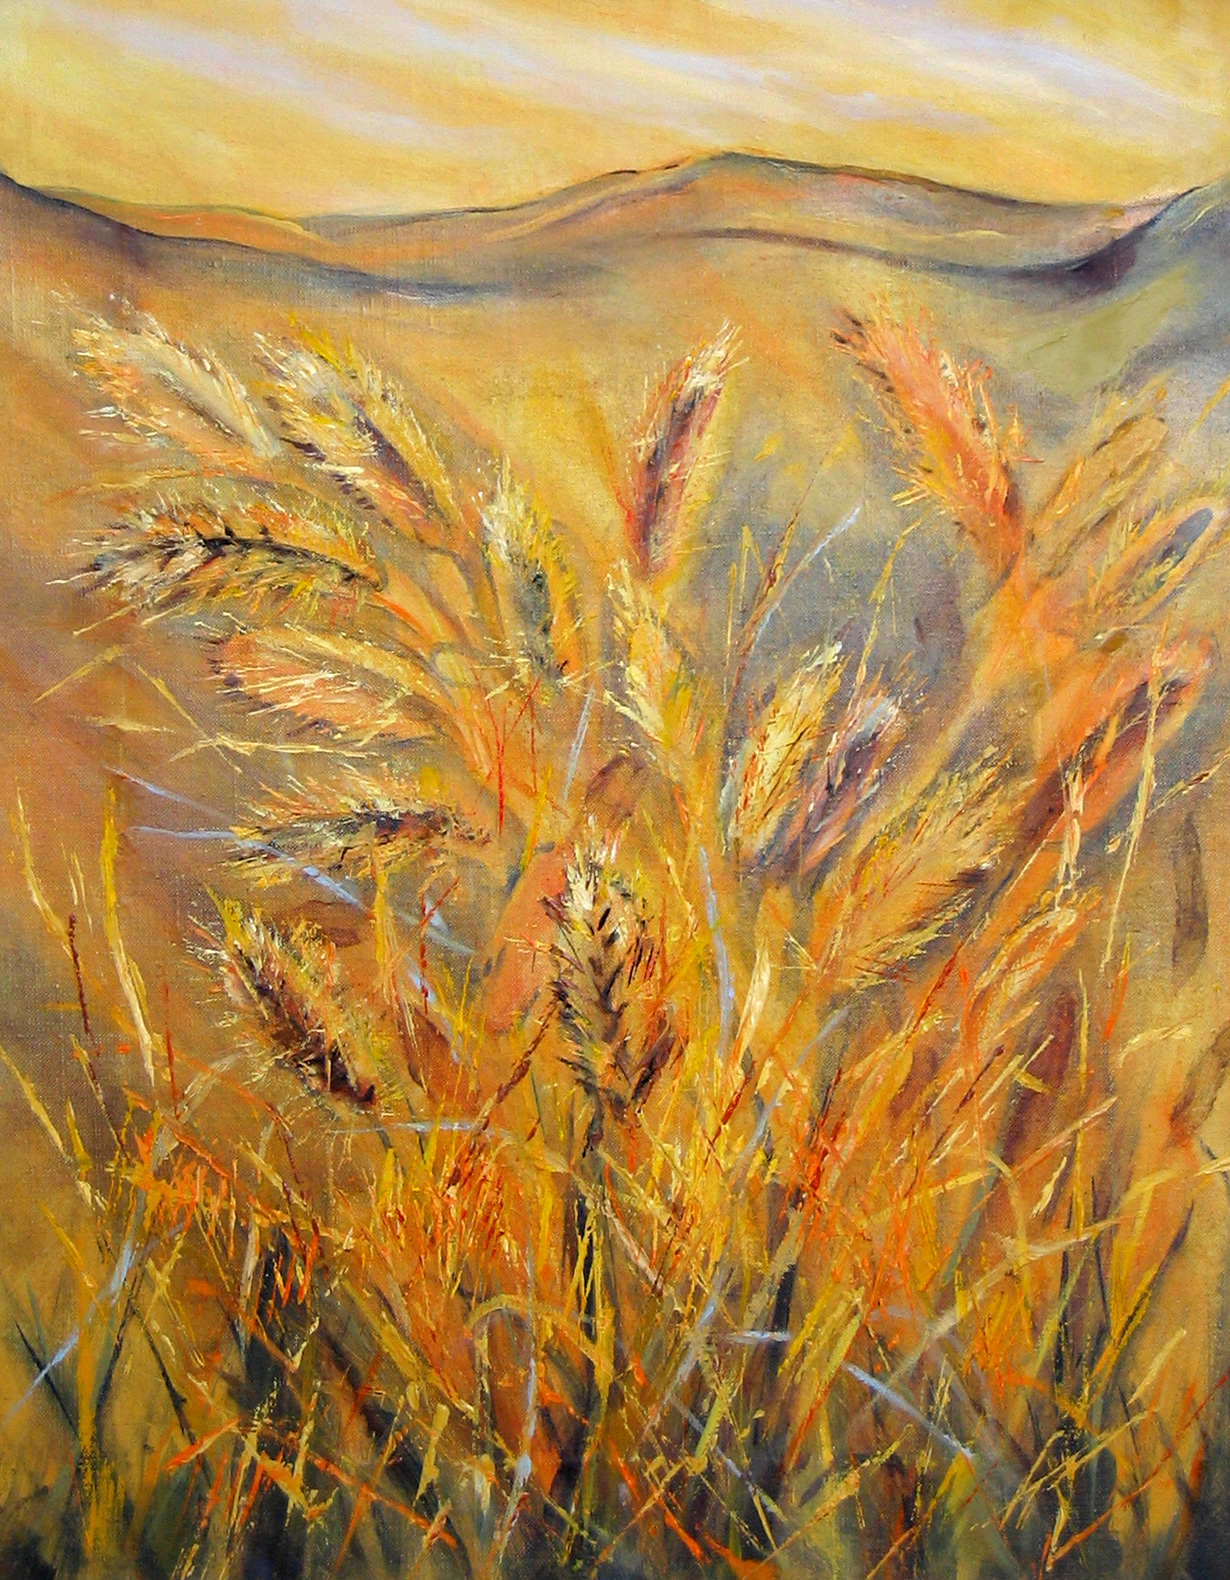 grasses-oli-on-canvas-36cm-x-46cm